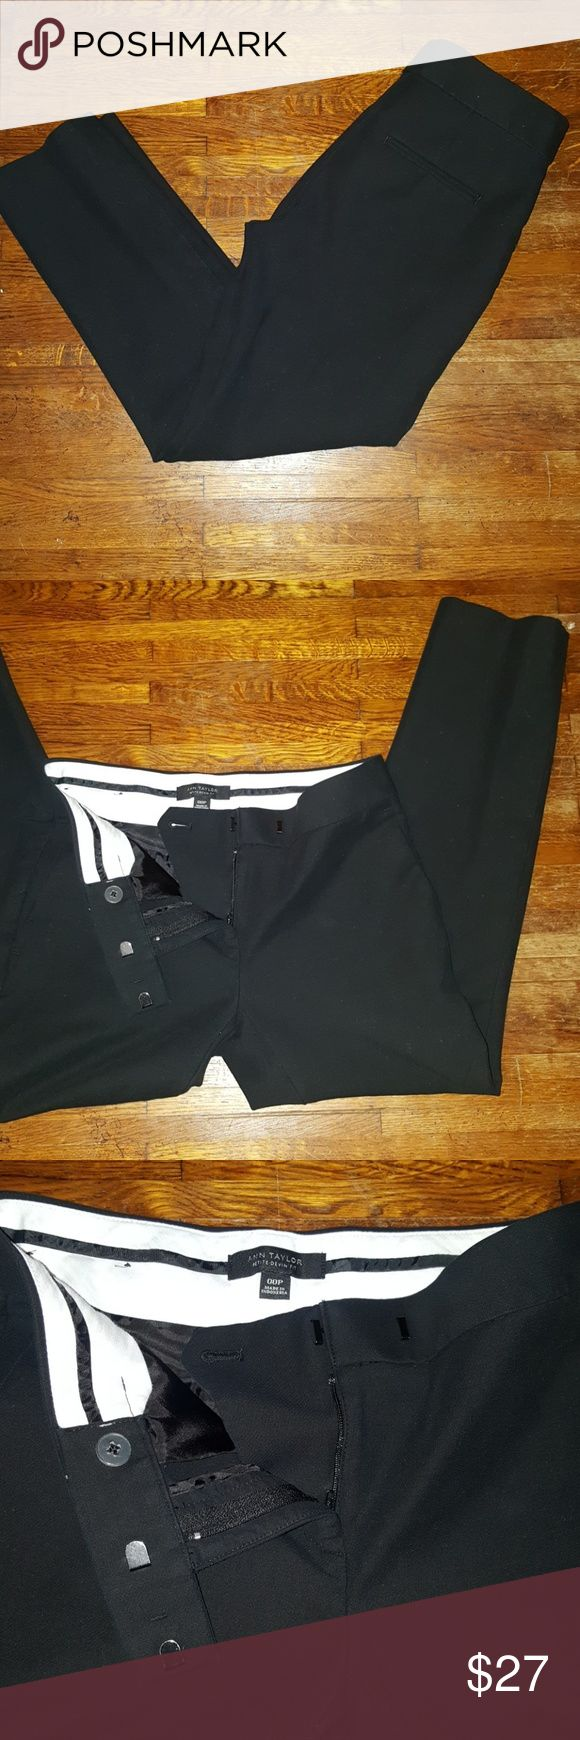 Ann Taylor Petite Devin Fit Black Slacks Re-posh  Excellent condition, a little too big for me.   Black skinny dress pants. Very solid nice material that will last a while!   No fading, holes, etc. Like New!  Bought a few weeks ago and unfortunately they don't fit my body.   Great work or dress pants! A must have staple!   Front and back pockets. Zip fly, double hook closure with hidden inside button closure. Ann Taylor Pants Skinny